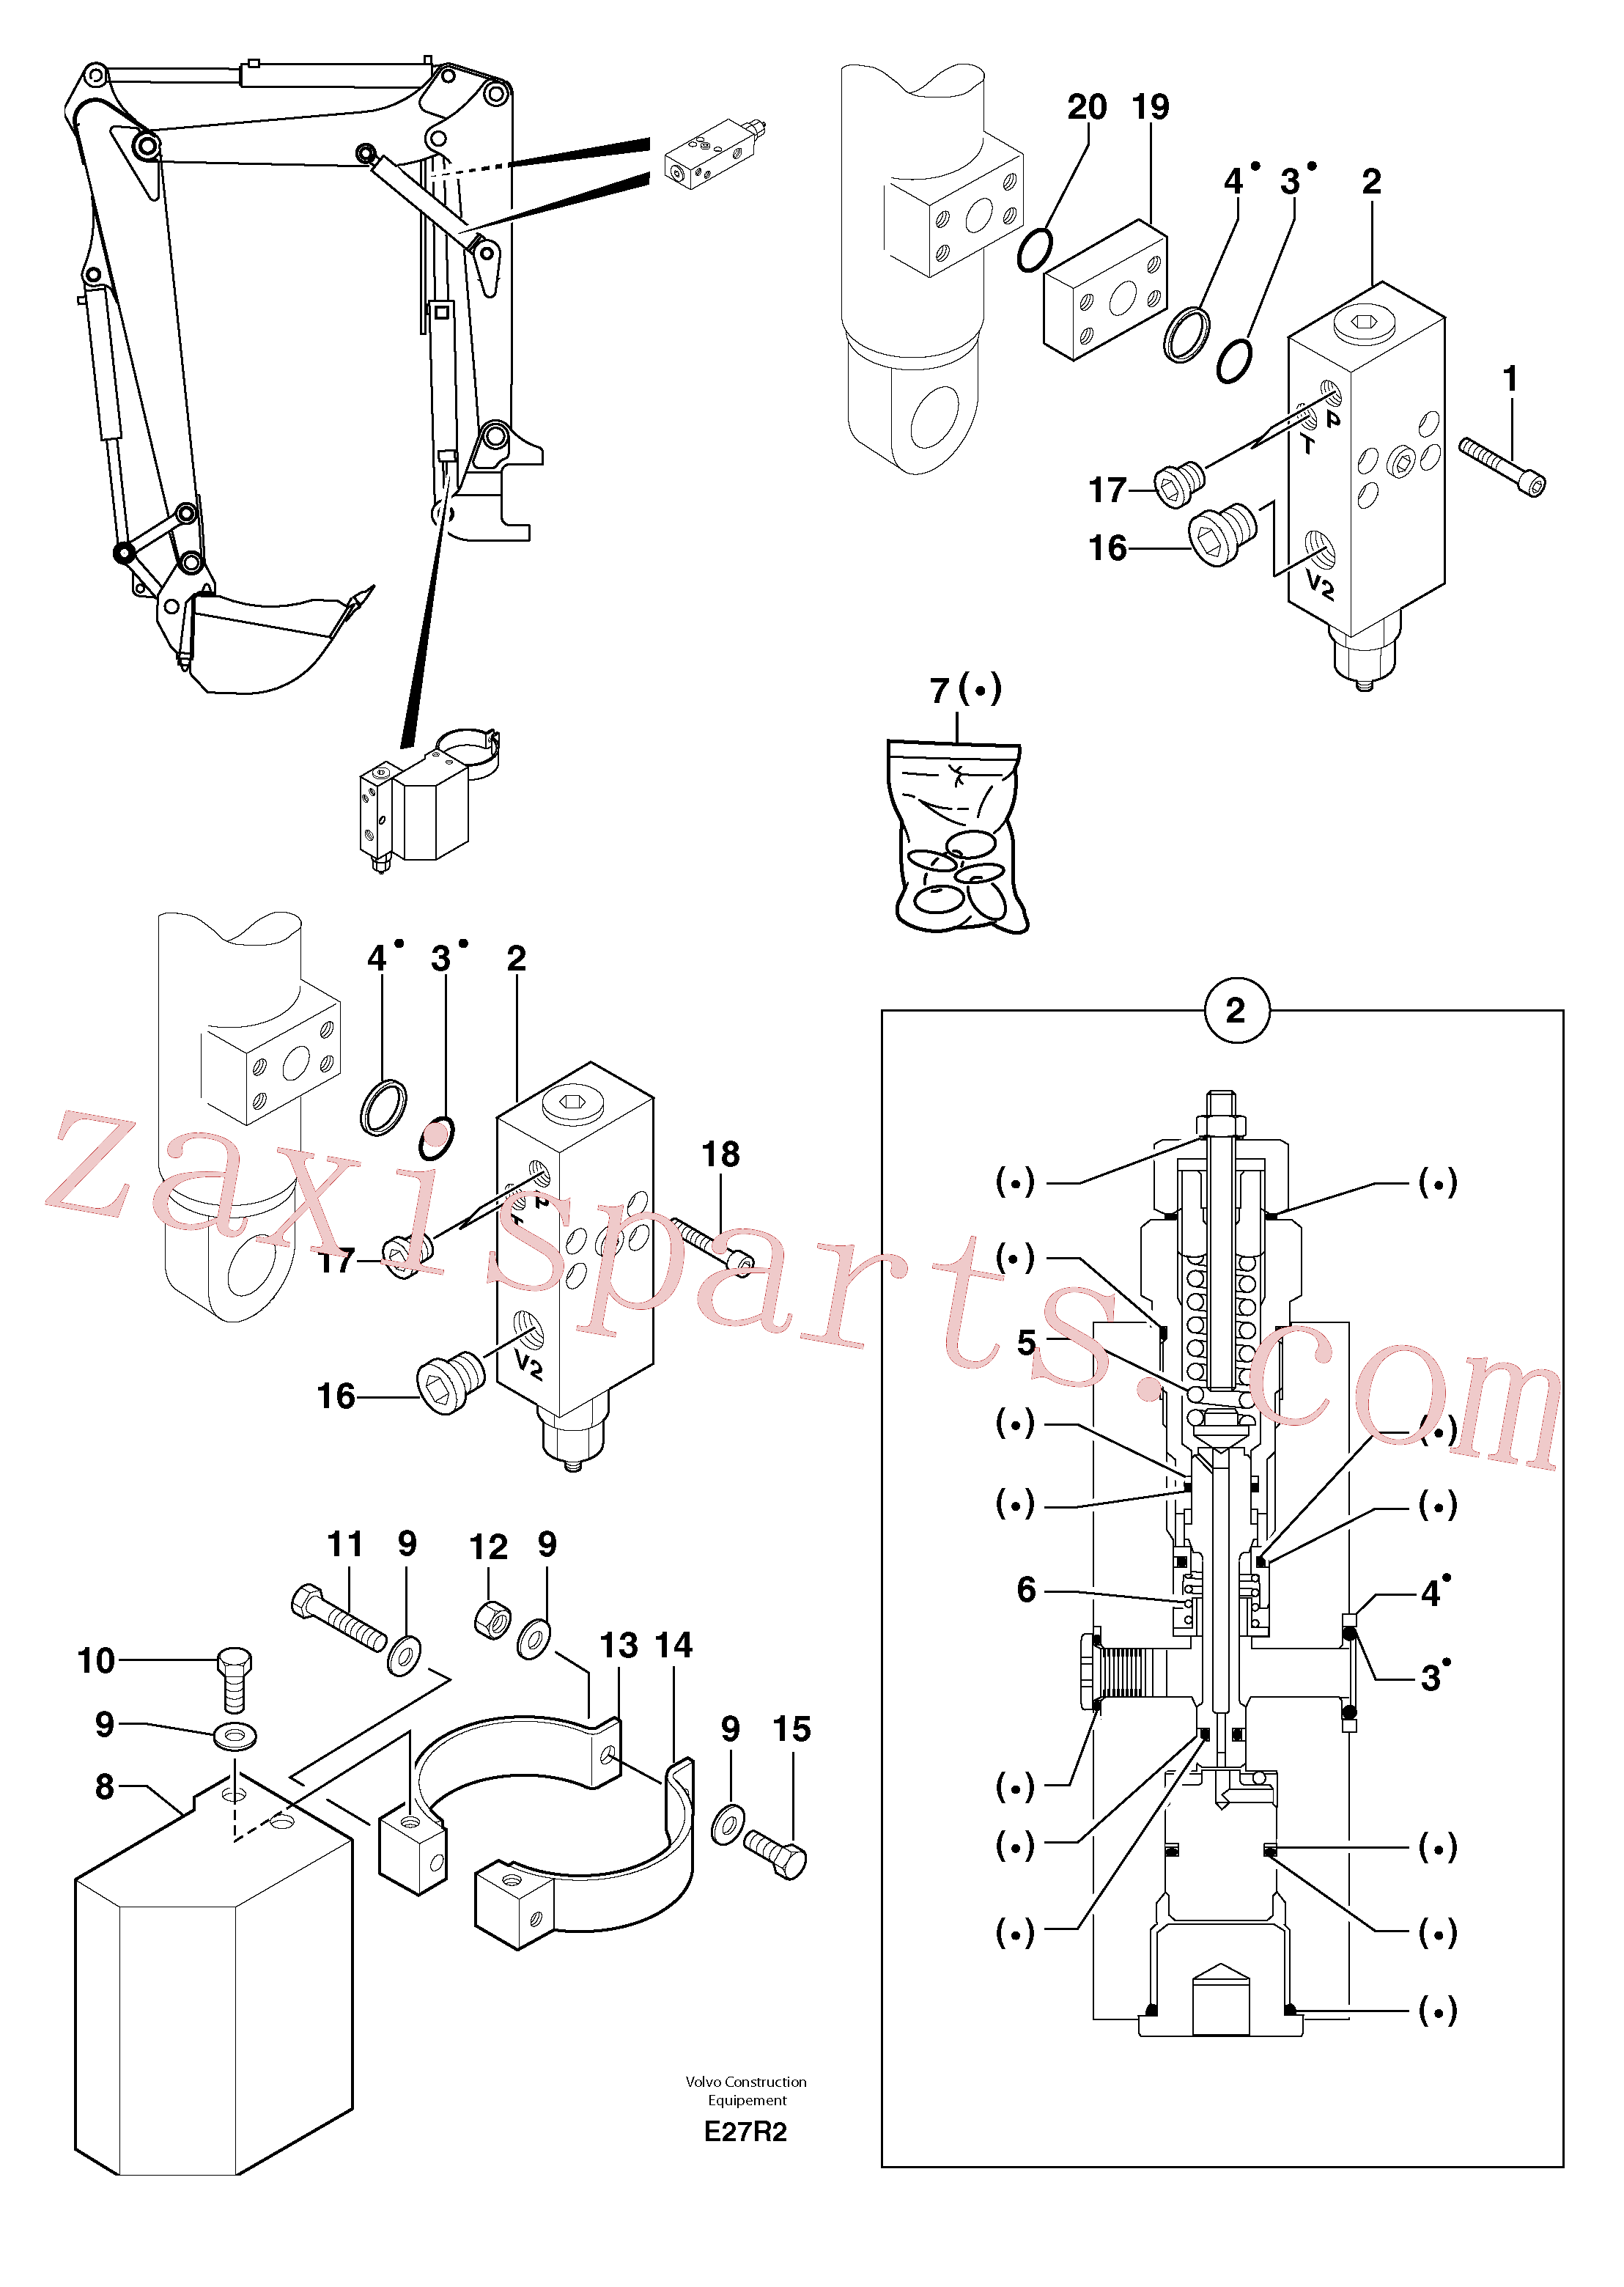 PJ4770724 for Volvo Safety valve(E27R2 assembly)